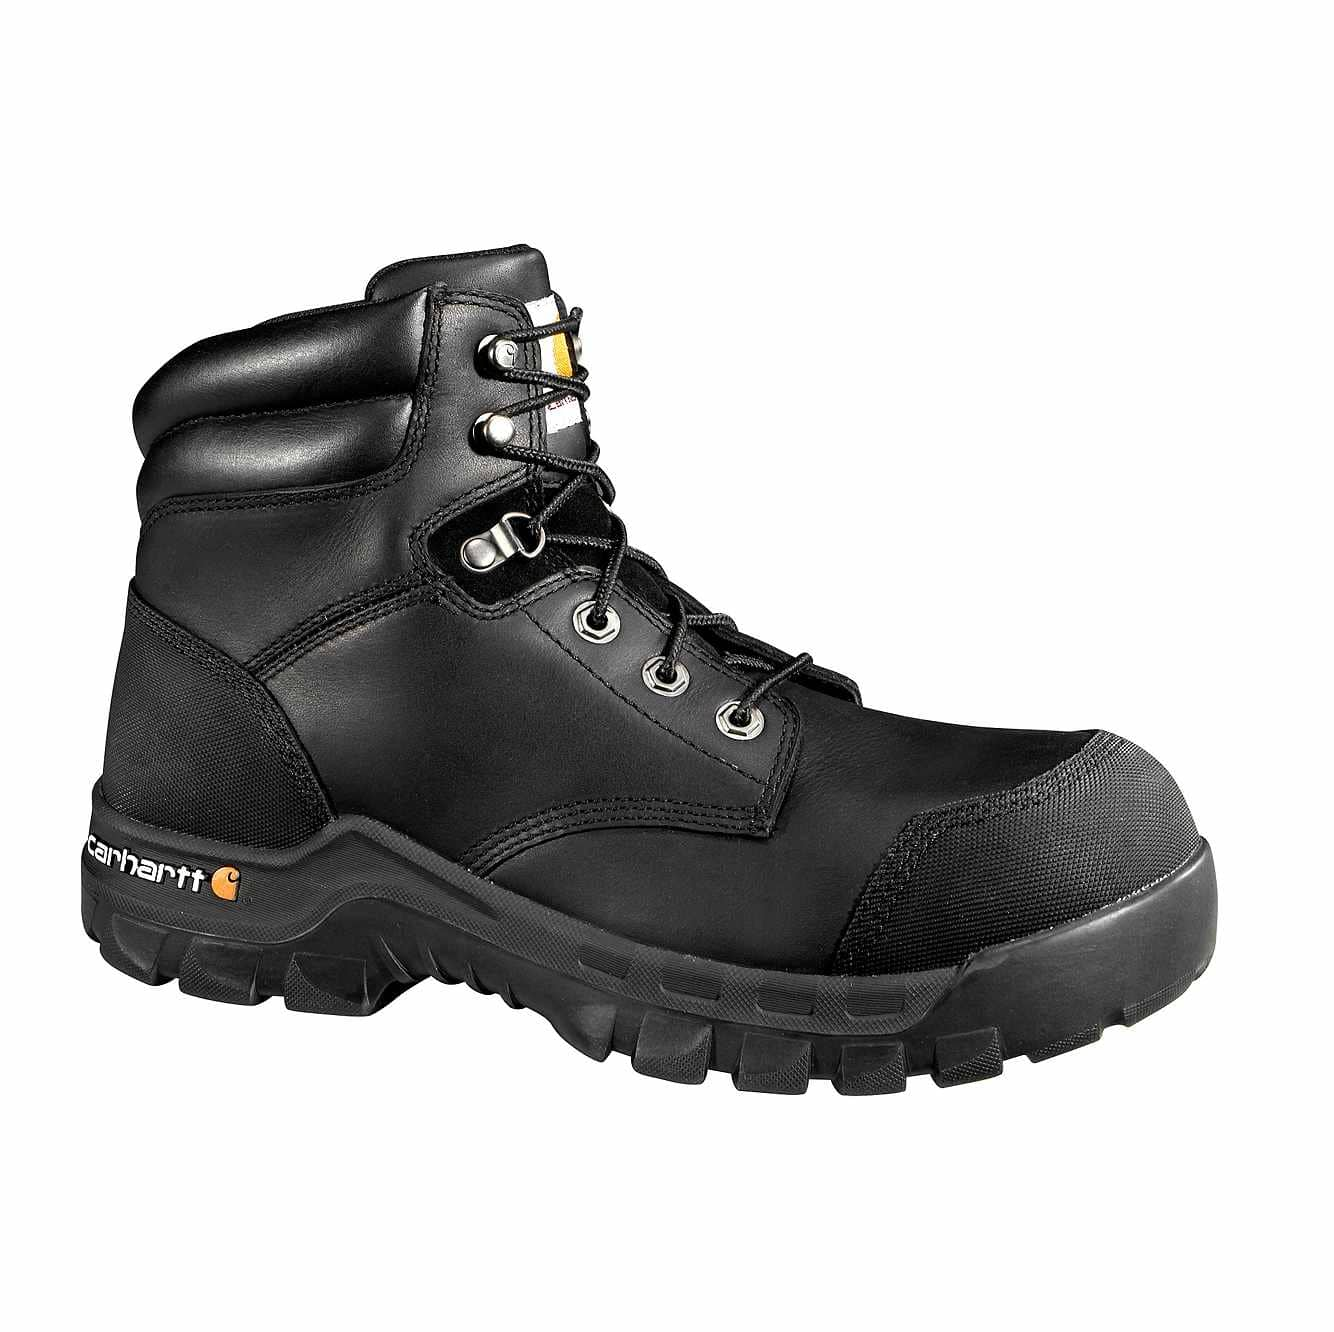 Picture of Rugged Flex® 6-Inch Composite Toe Work Boot in Black Oil Tanned